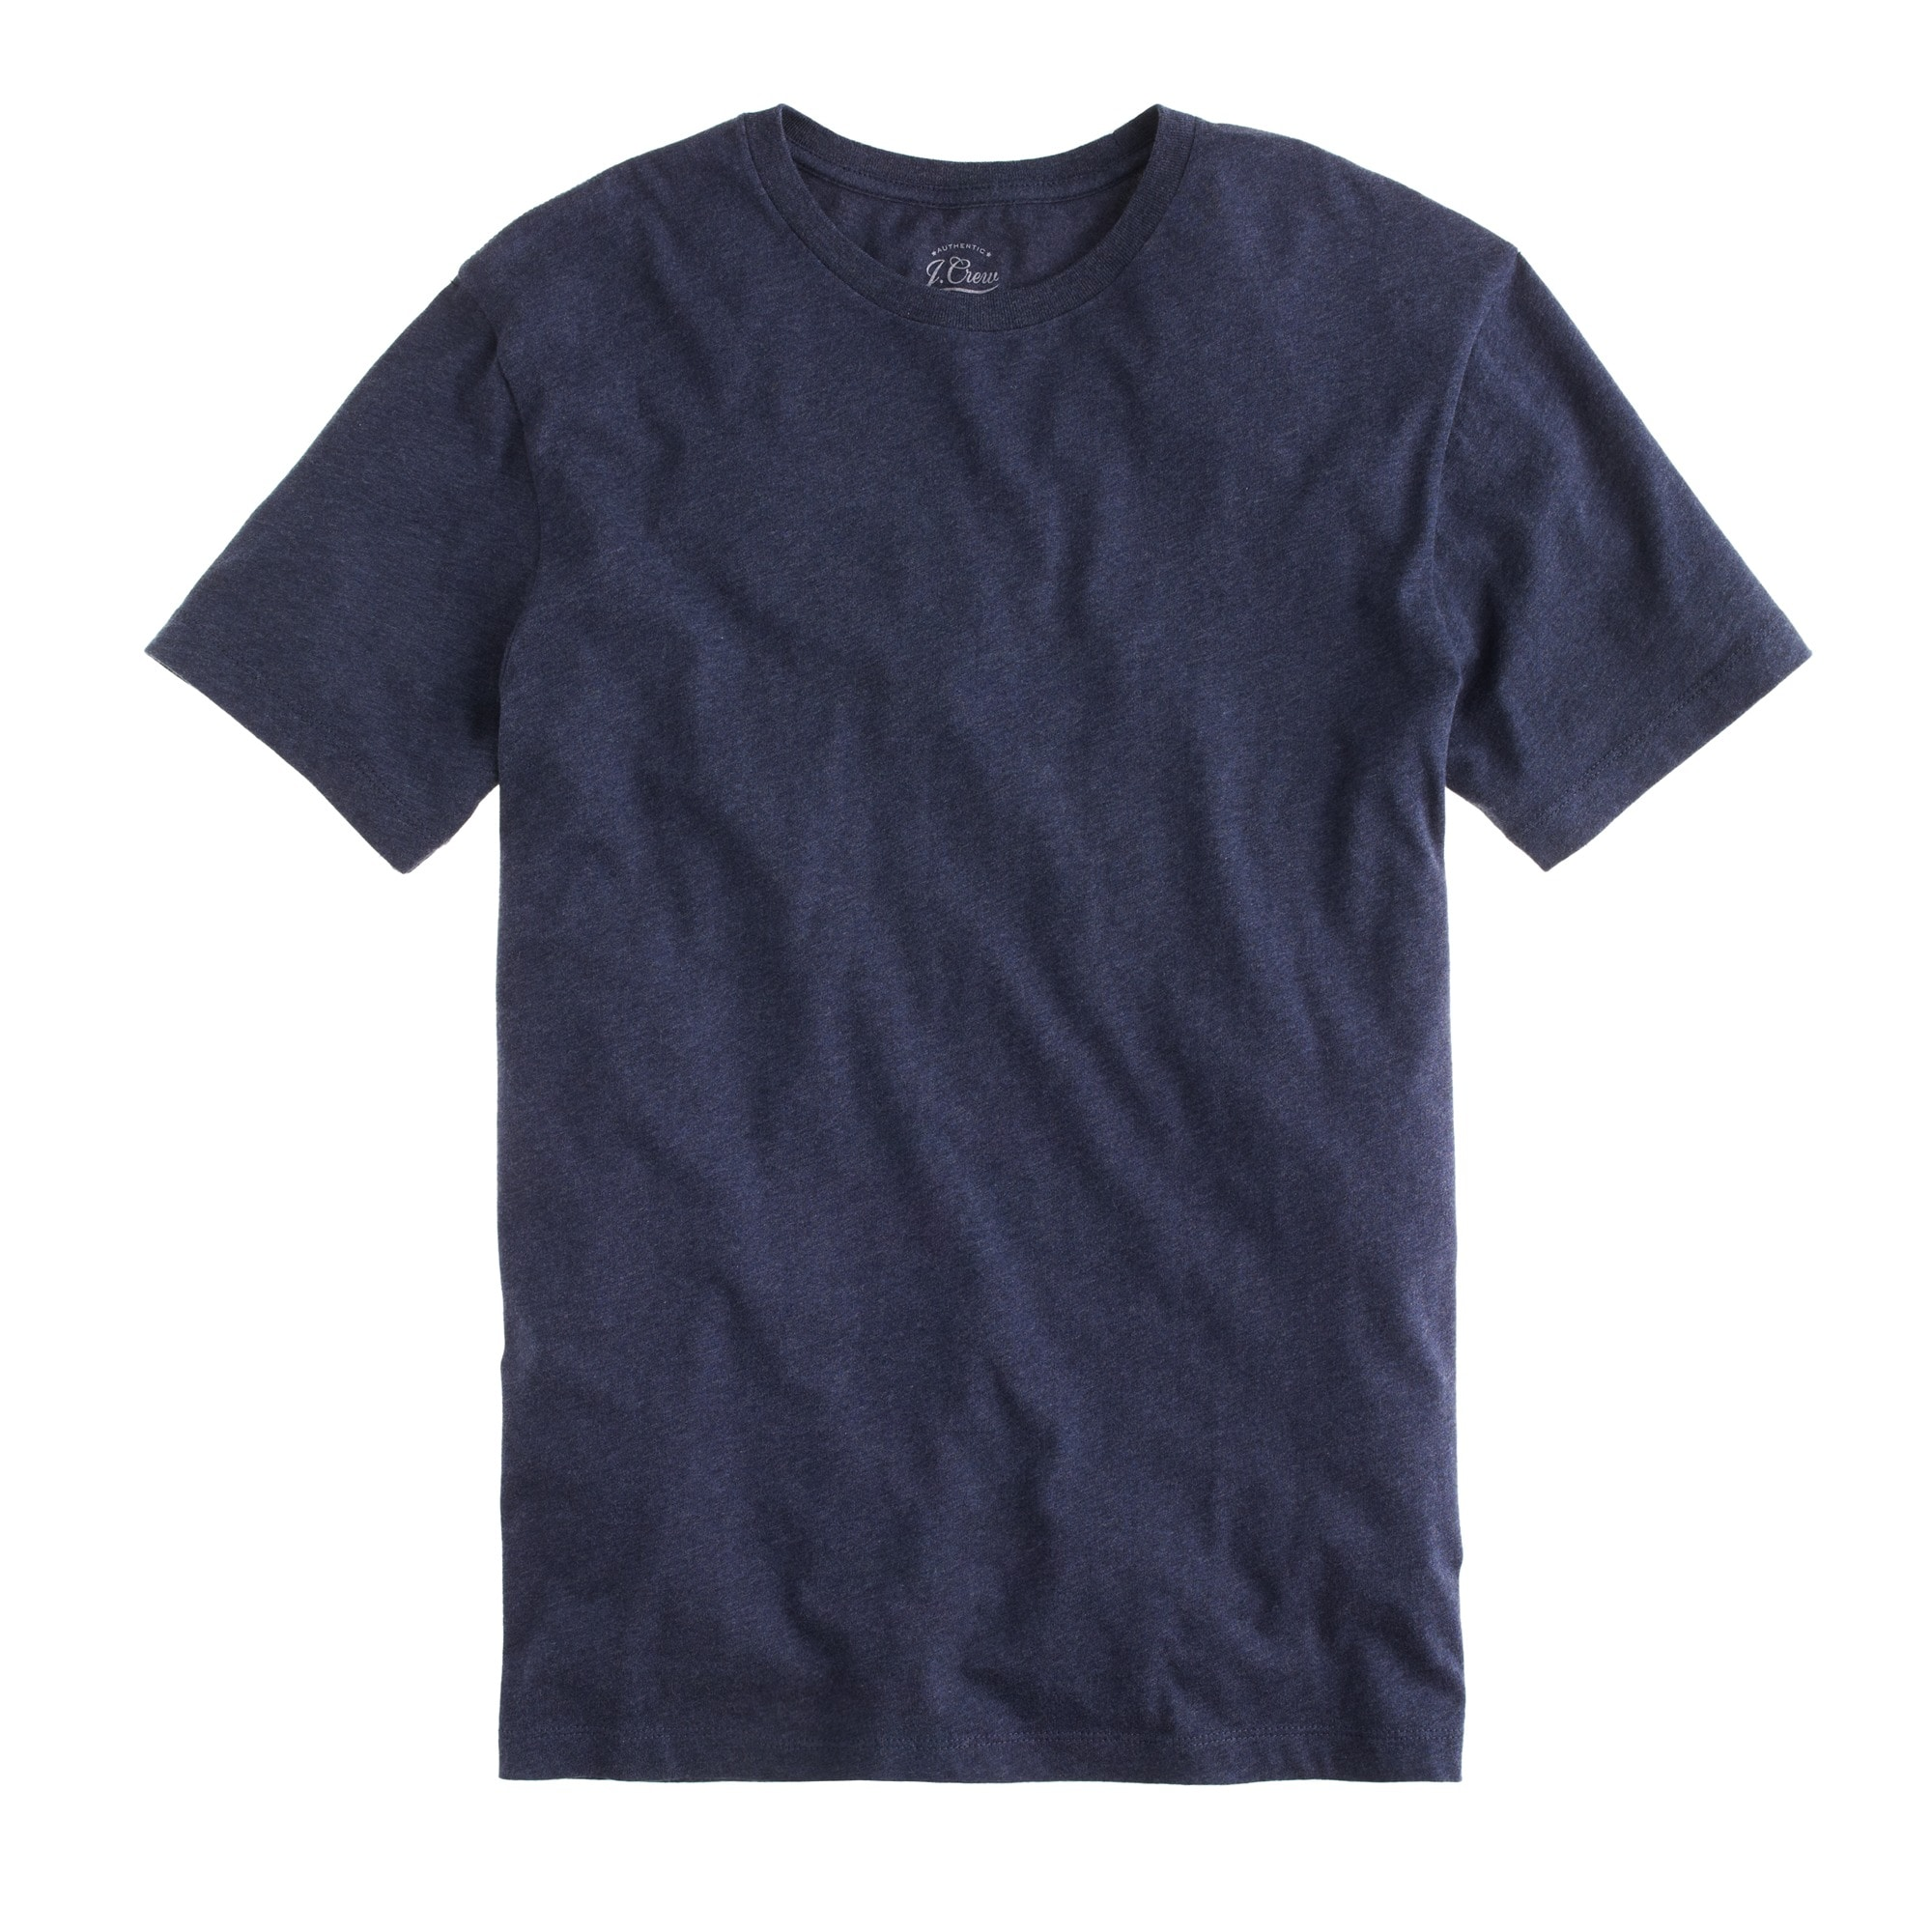 Broken-in T-shirt men j.crew in good company c